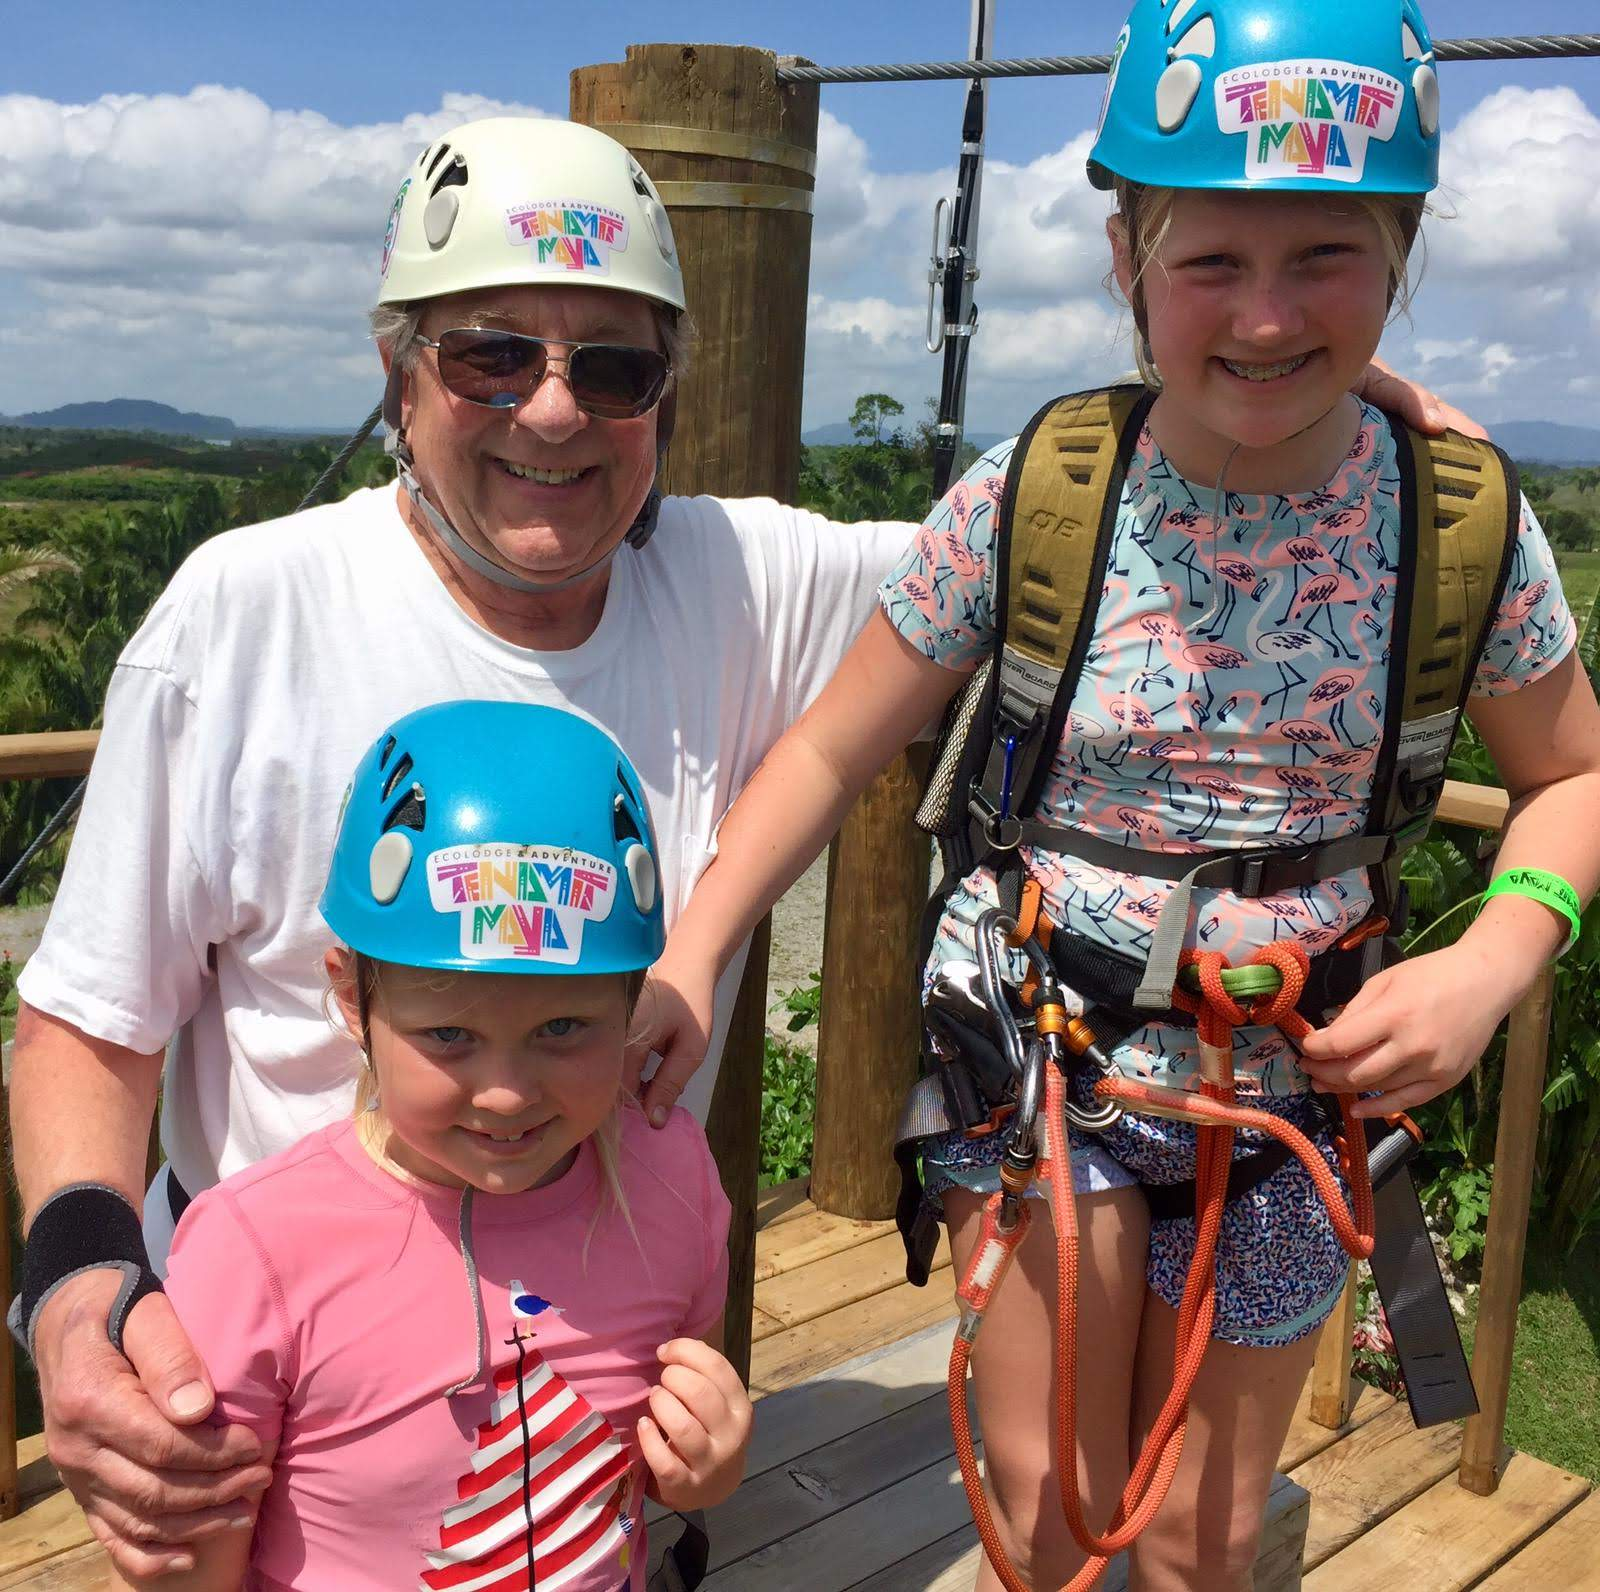 Grampsy, Audrey and Lorelei ready to zipline